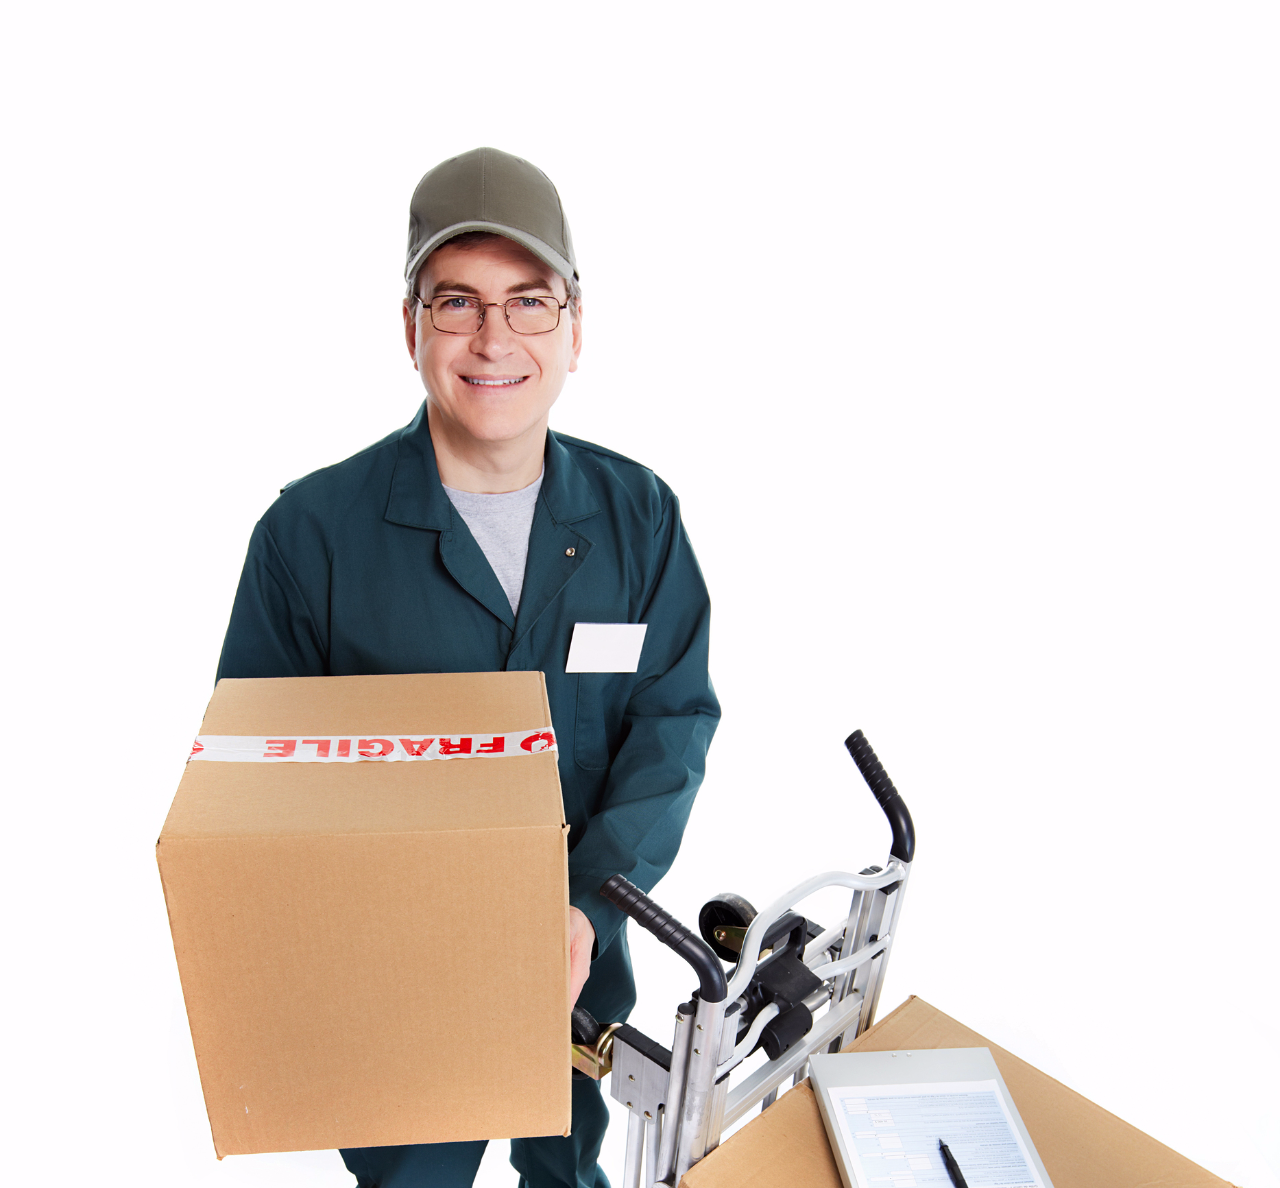 Delivery postman. Isolated on white background._edited.jpg